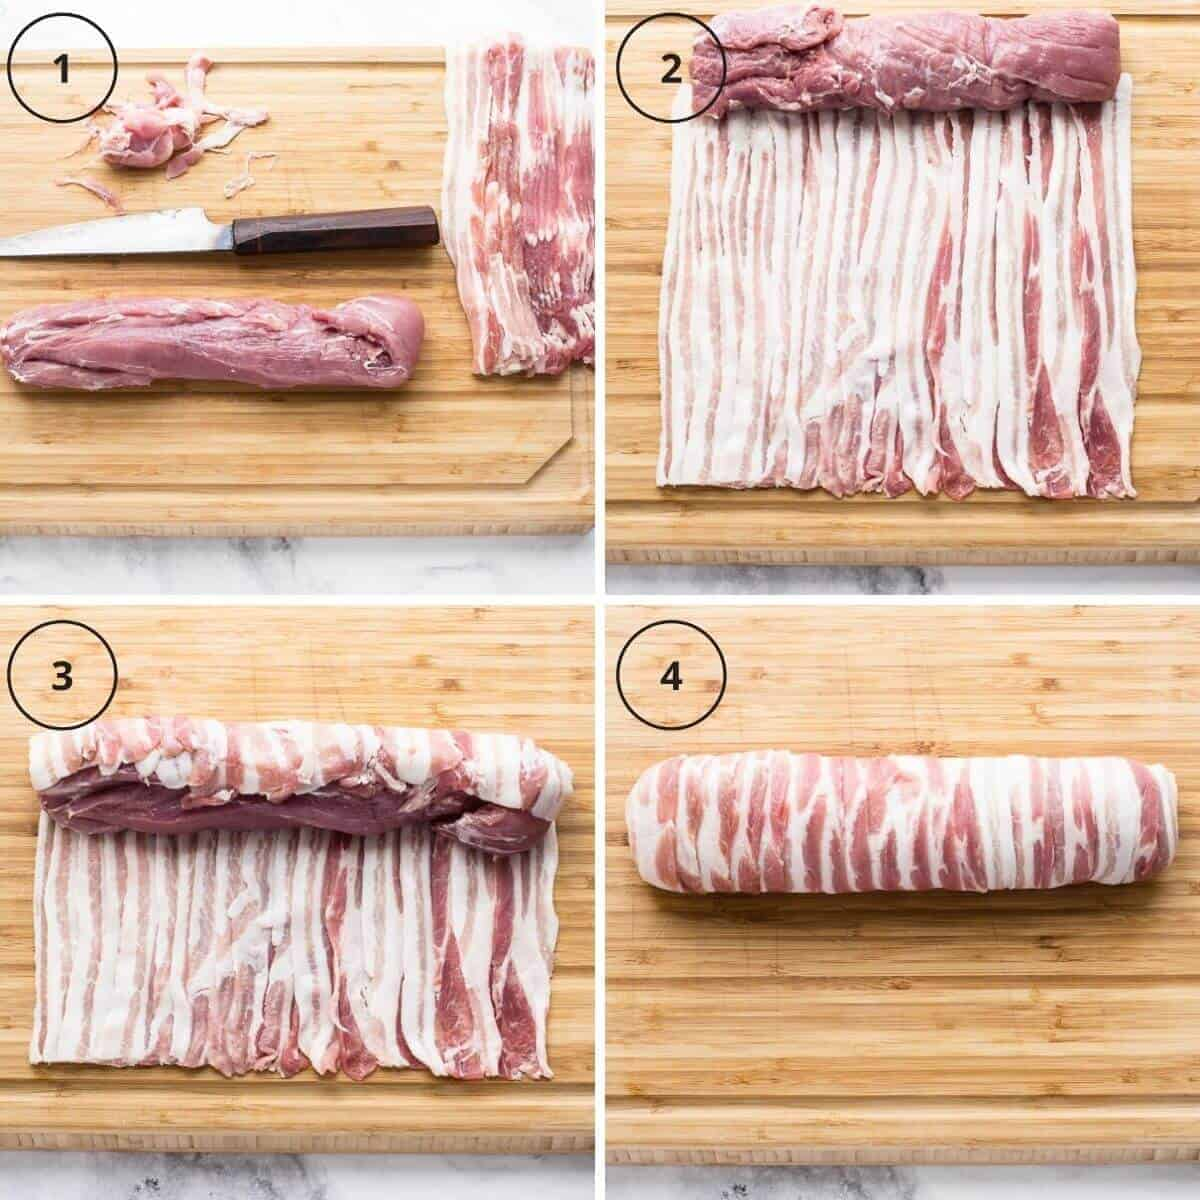 How to wrap pork fillet in bacon